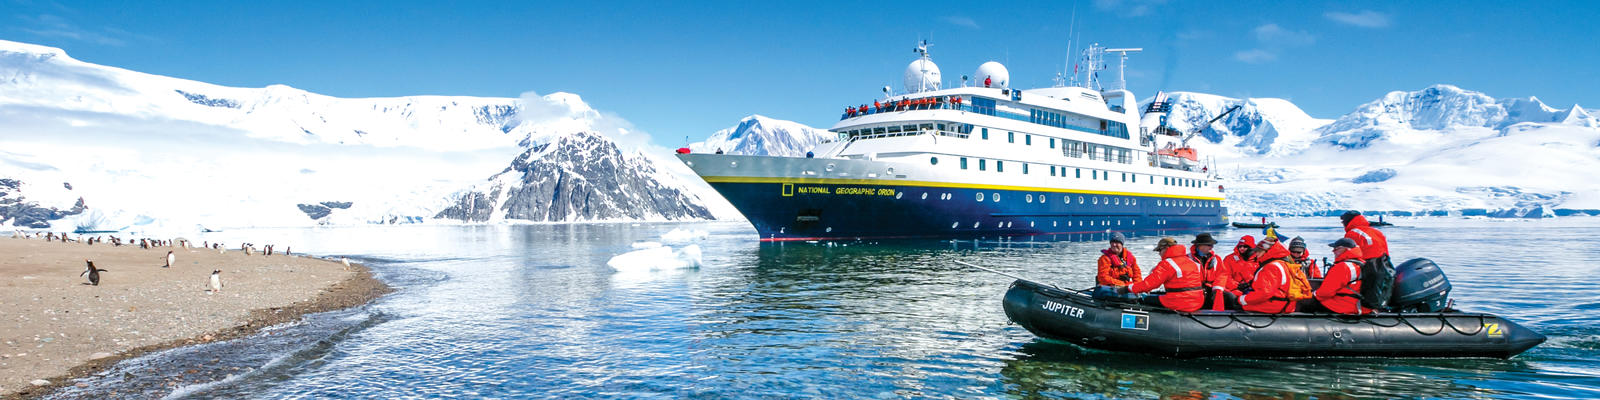 National Geographic Orion docked in Antarctica while a Zodiac full of passengers heads to a penguin-covered shore